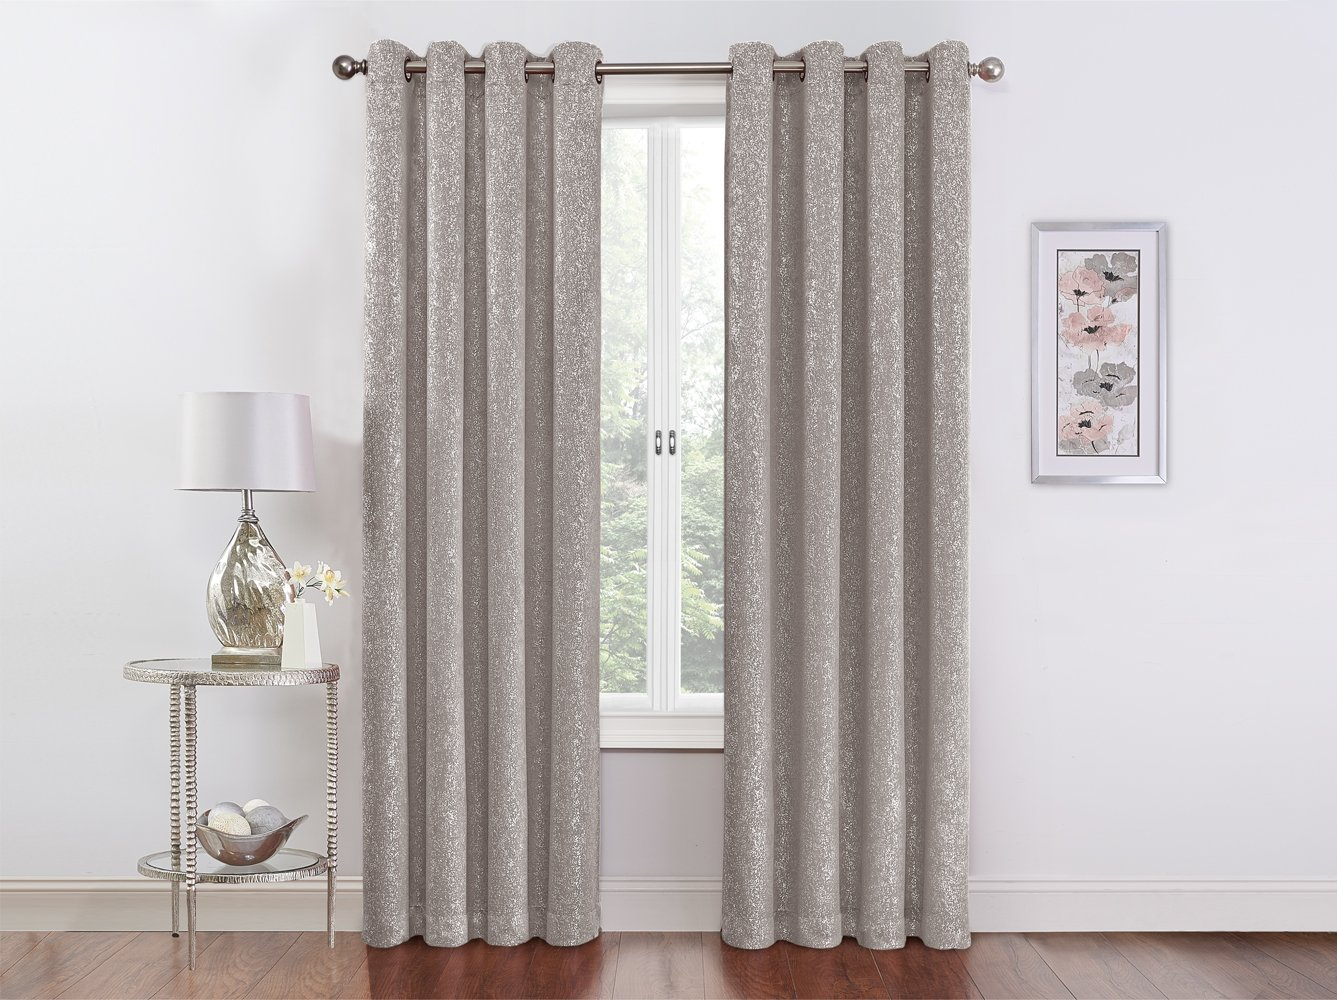 depot drapes they diy better samara eclipse have finally i ikea blackout imagined than curtains dsc liner home marjun for light lowes could review blocking kmart bedroom amazon are thermal